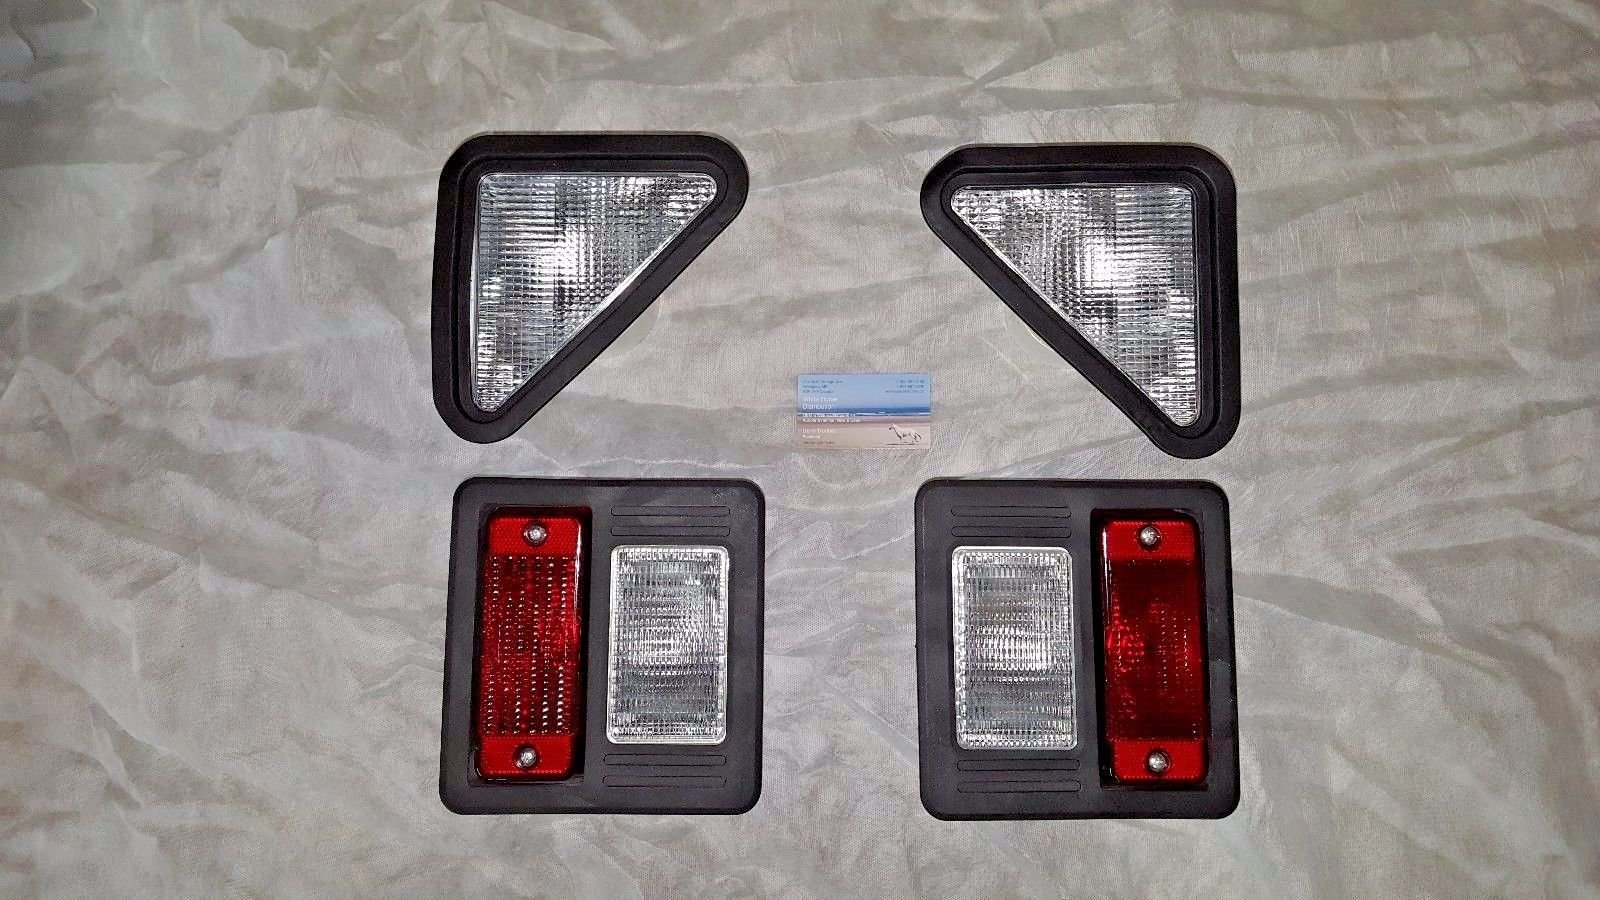 Bobcat Skid Steer Exterior Head Tail Light Kit for S220 S250 S300 S330 T110 T140 by Bobcat